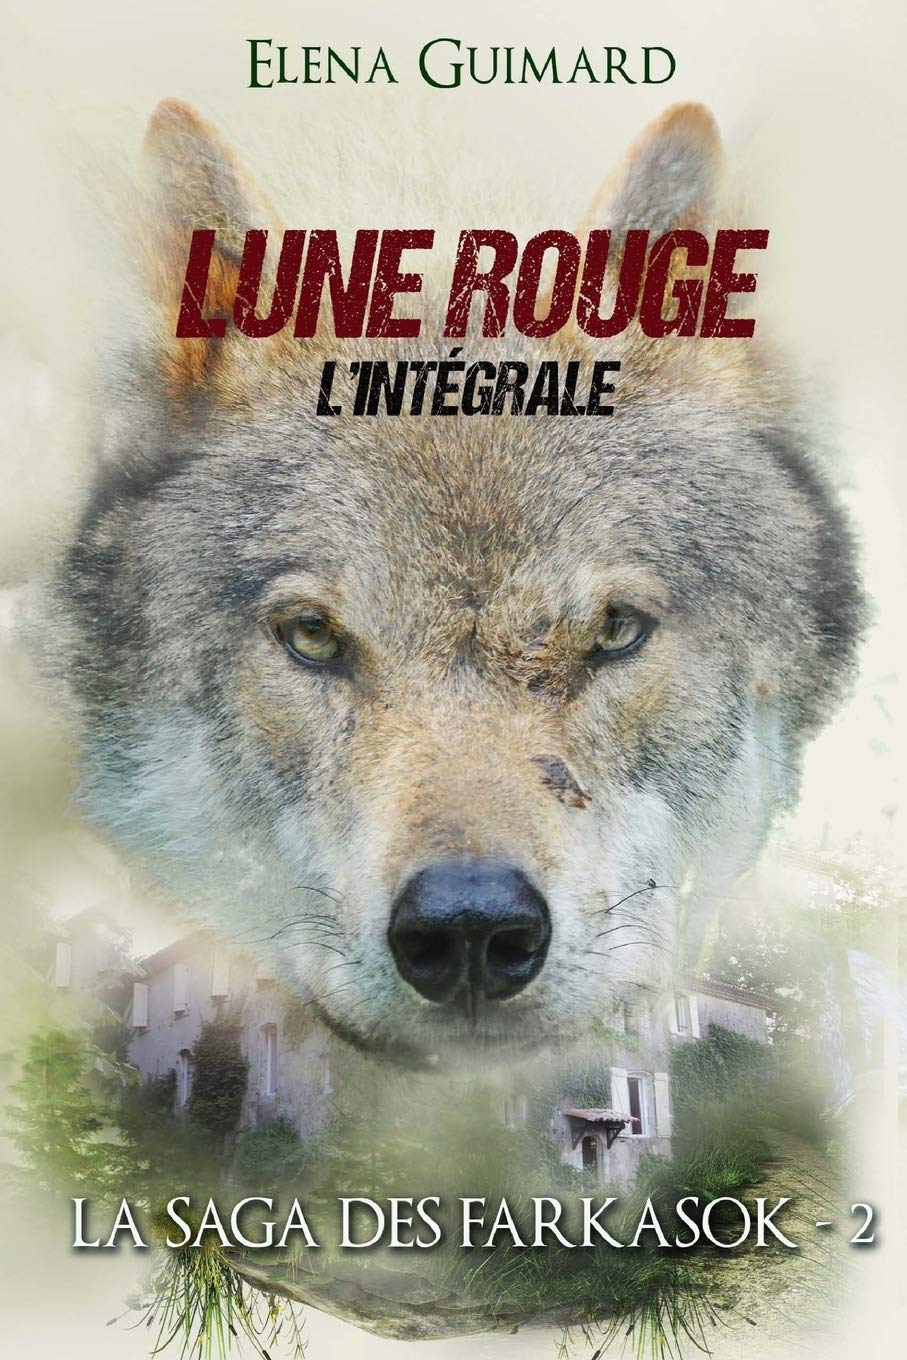 Lune Rouge: L'integrale Broché – 11 février 2016 Elena Guimard Lune Rouge: L' integrale 1523972874 Fiction / Romance / Fantasy